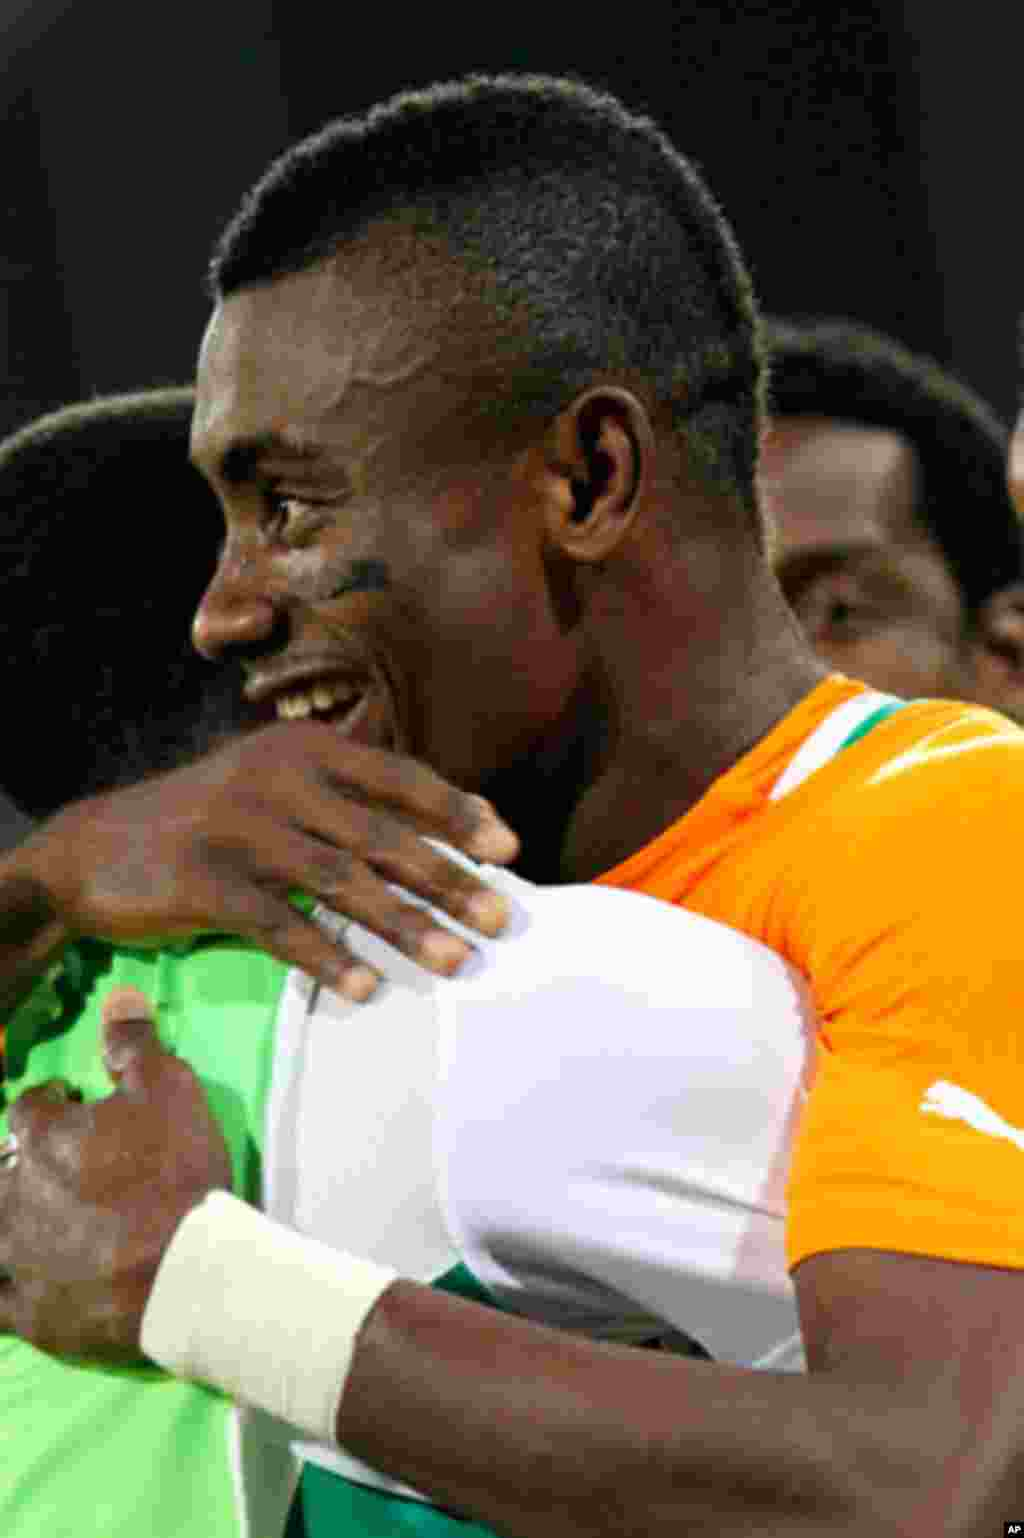 Kalou of Ivory Coast celebrates after scoring against Burkina Faso during their African Nations Cup soccer match in Malabo